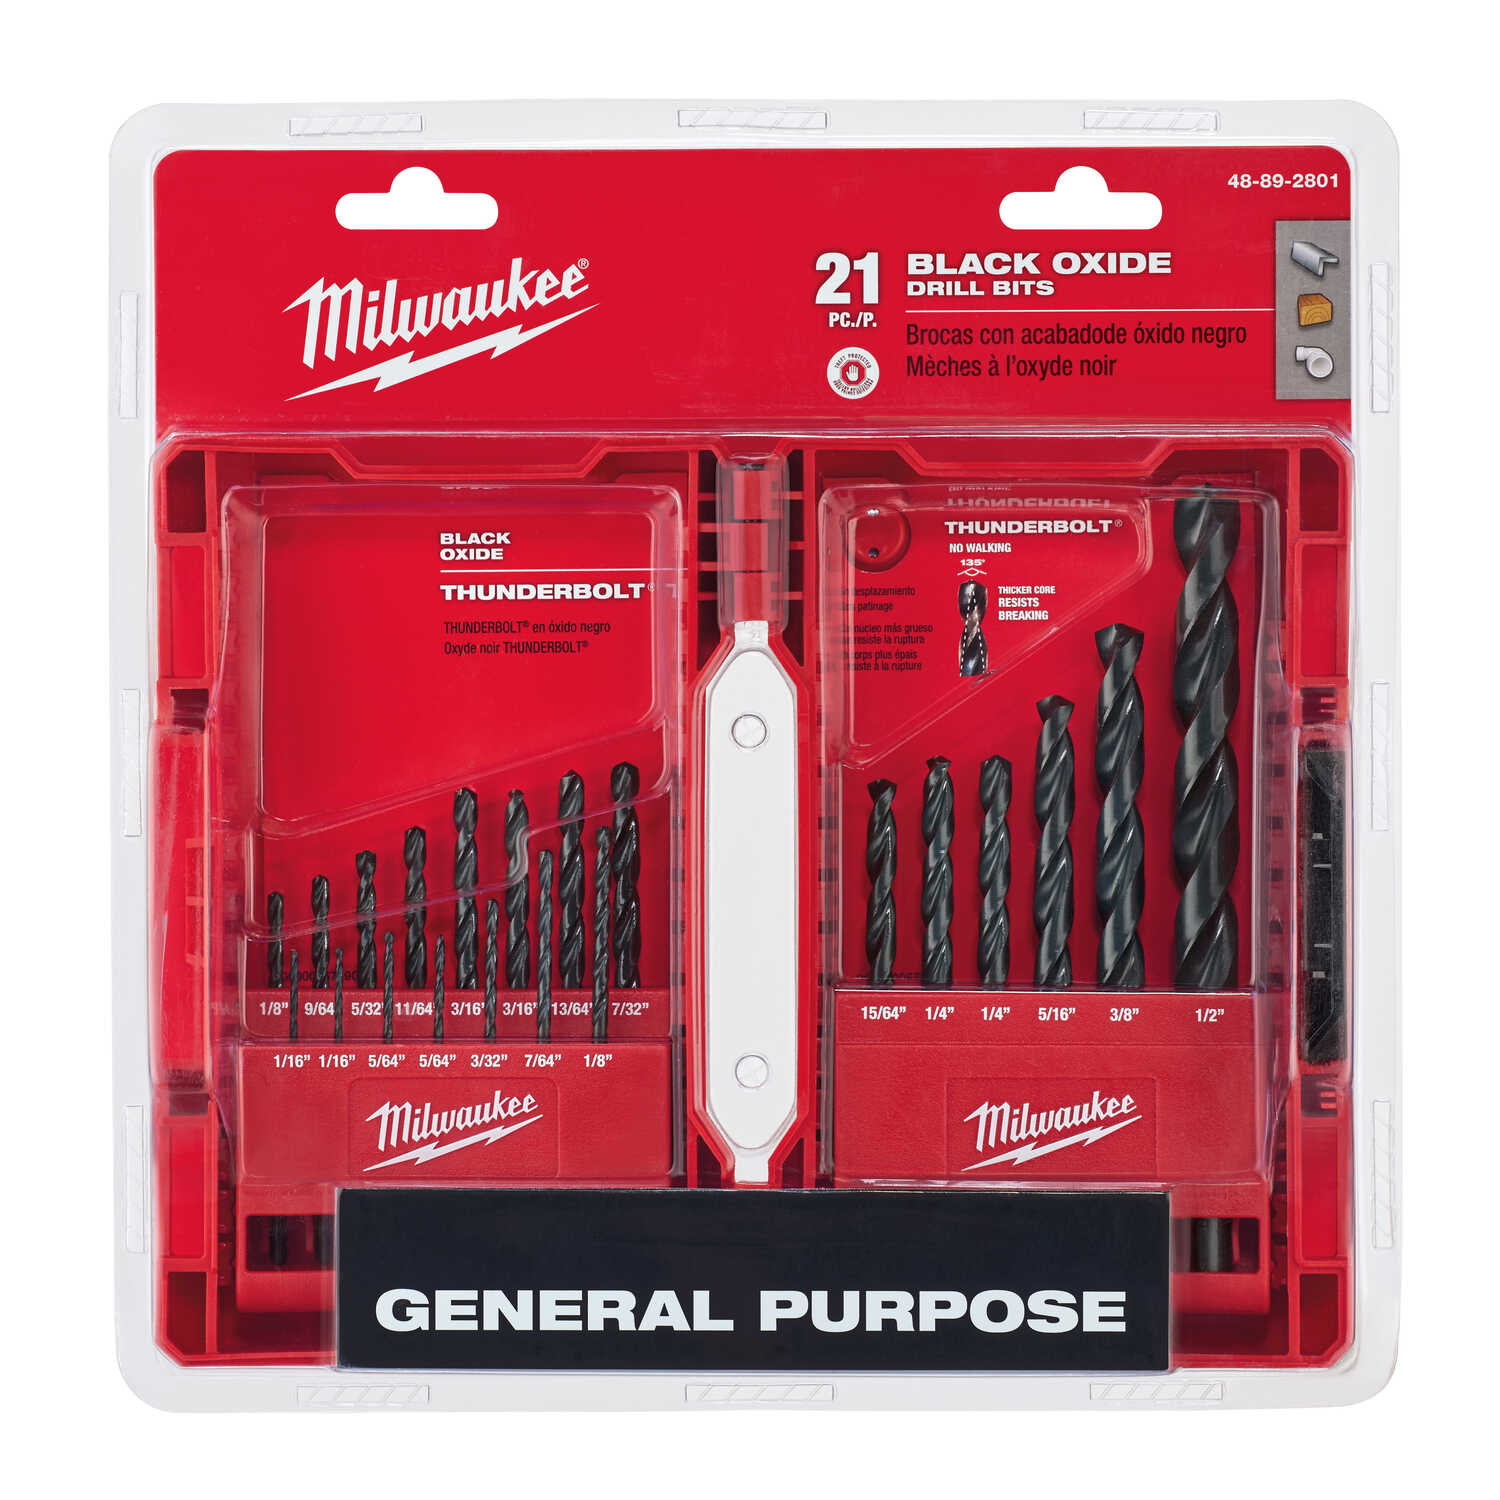 Milwaukee  THUNDERBOLT  Assorted  Dia. Black Oxide  Drill Bit Set  3/8 in. 21 pc. 3-Flat Shank